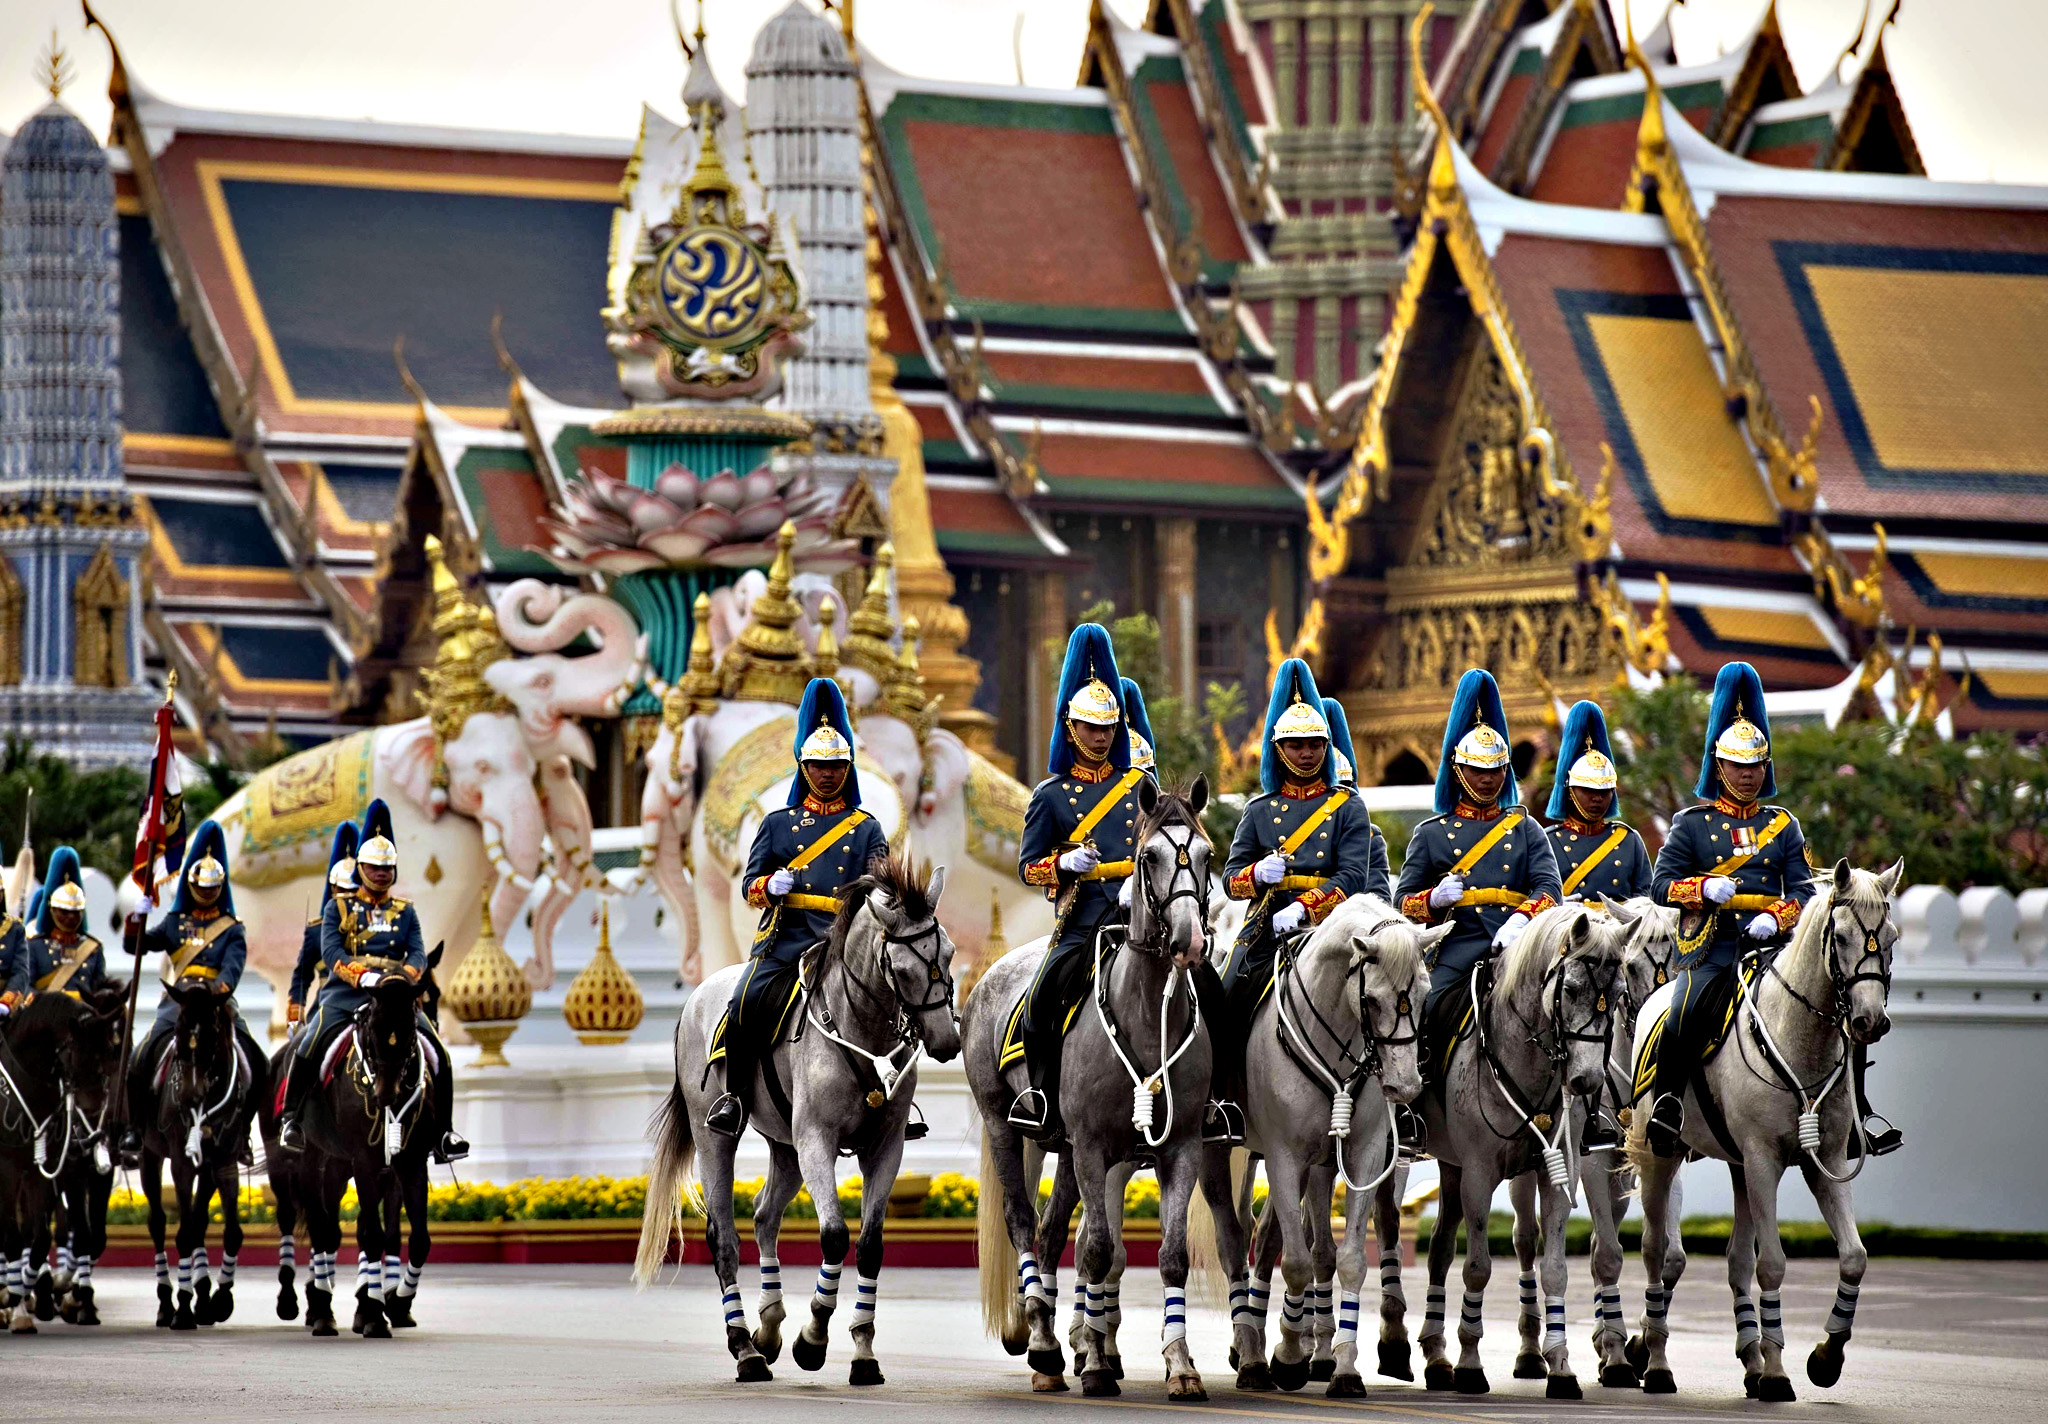 Royal cavalry soldiers parade in front of the Grand Palace as part of celebrations of the 88th birthday of Thai King Bhumibol Adulyadej in Bangkok on Thursday. Thai King Bhumibol, the world's longest reigning monarch who is regarded as a demi-god by many Thais and considered a unifying force in a politically turbulent nation, will turn 88 on December 5, 2015.